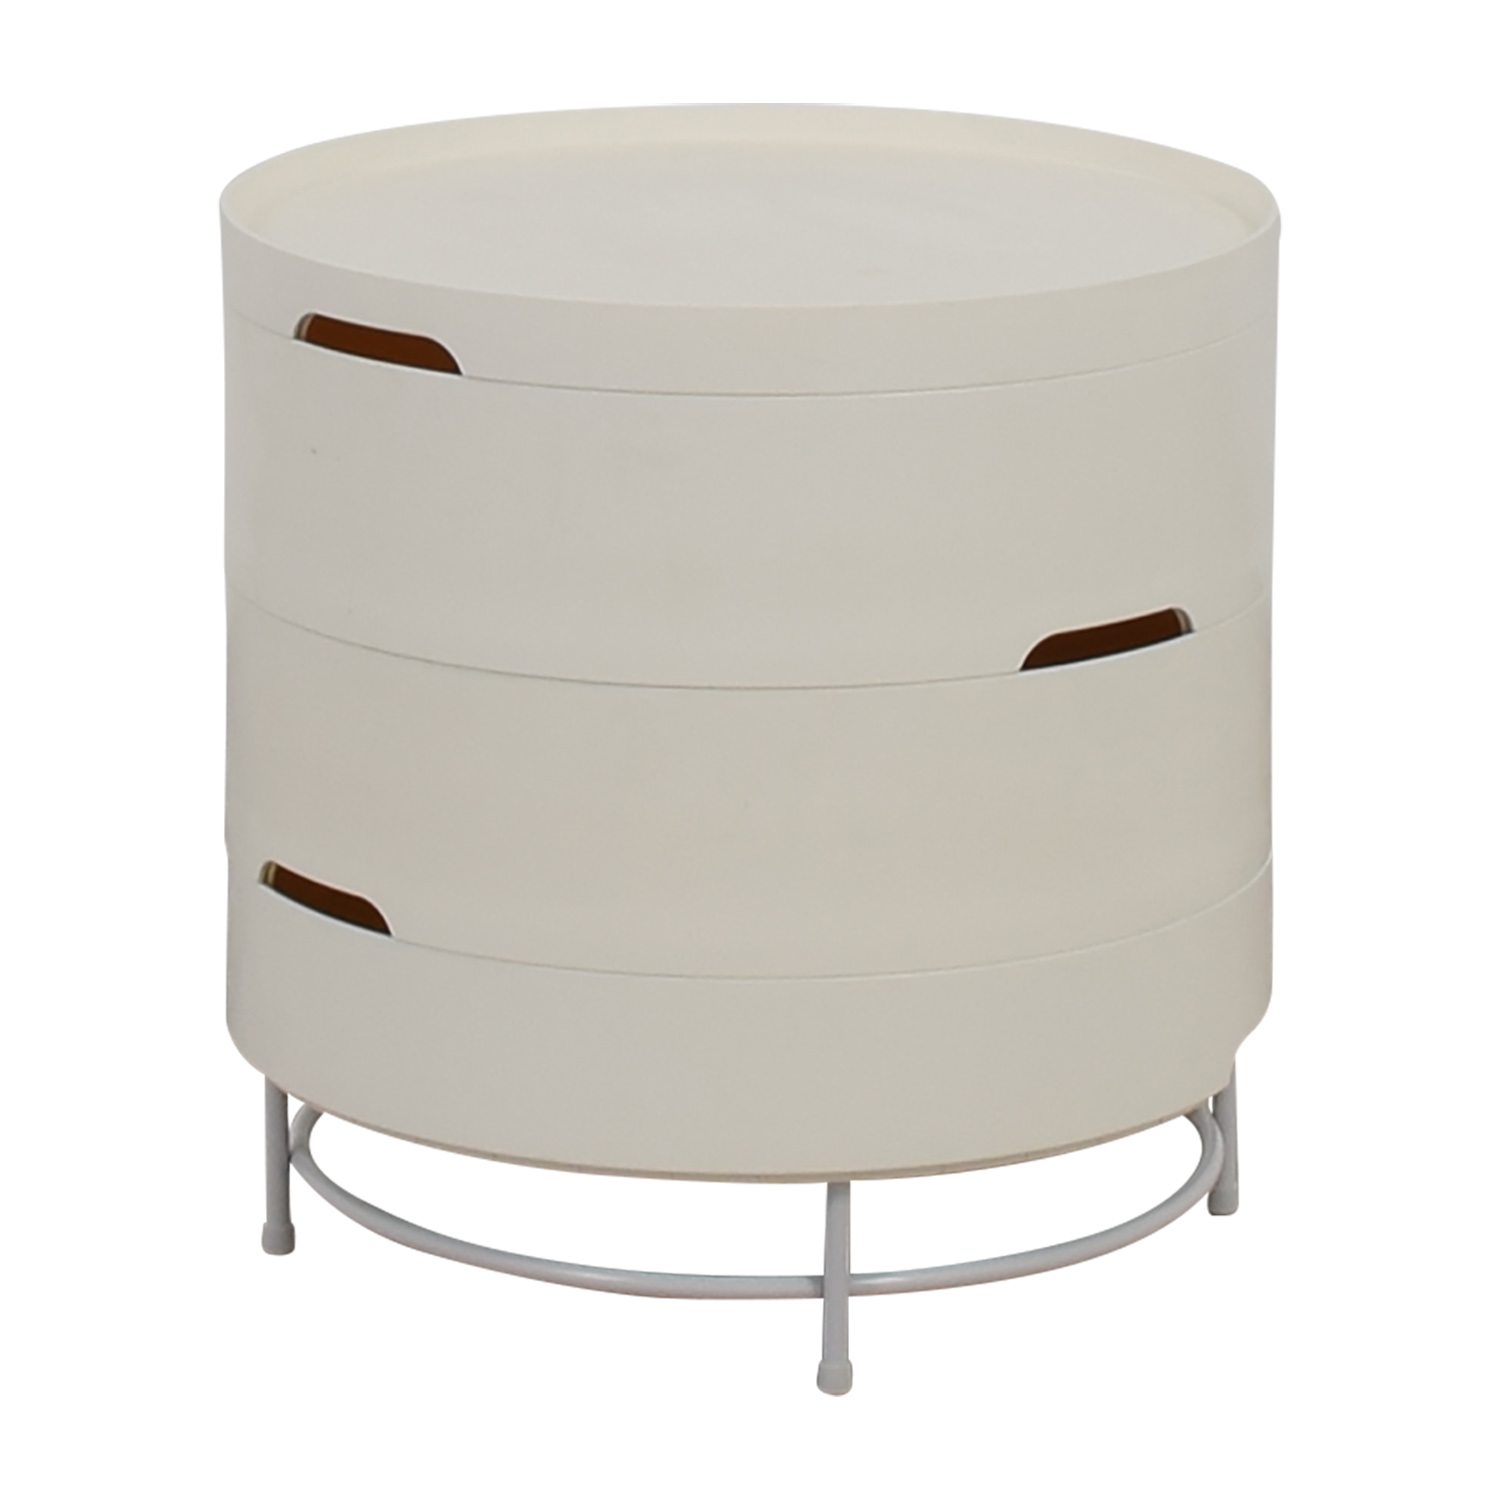 Ikea Ps 2017 White Round Storage Table Nj